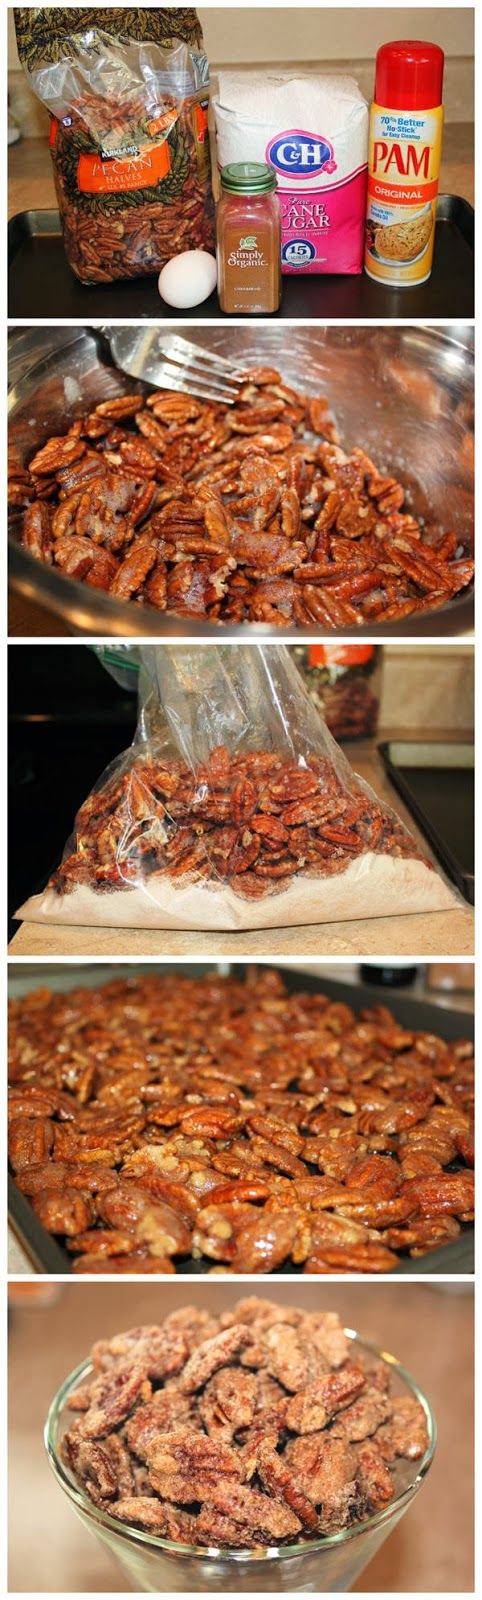 Cinnamon Sugar Pecans Recipe - kiss recipe #dessert #recipes #treat #healthy #recipe